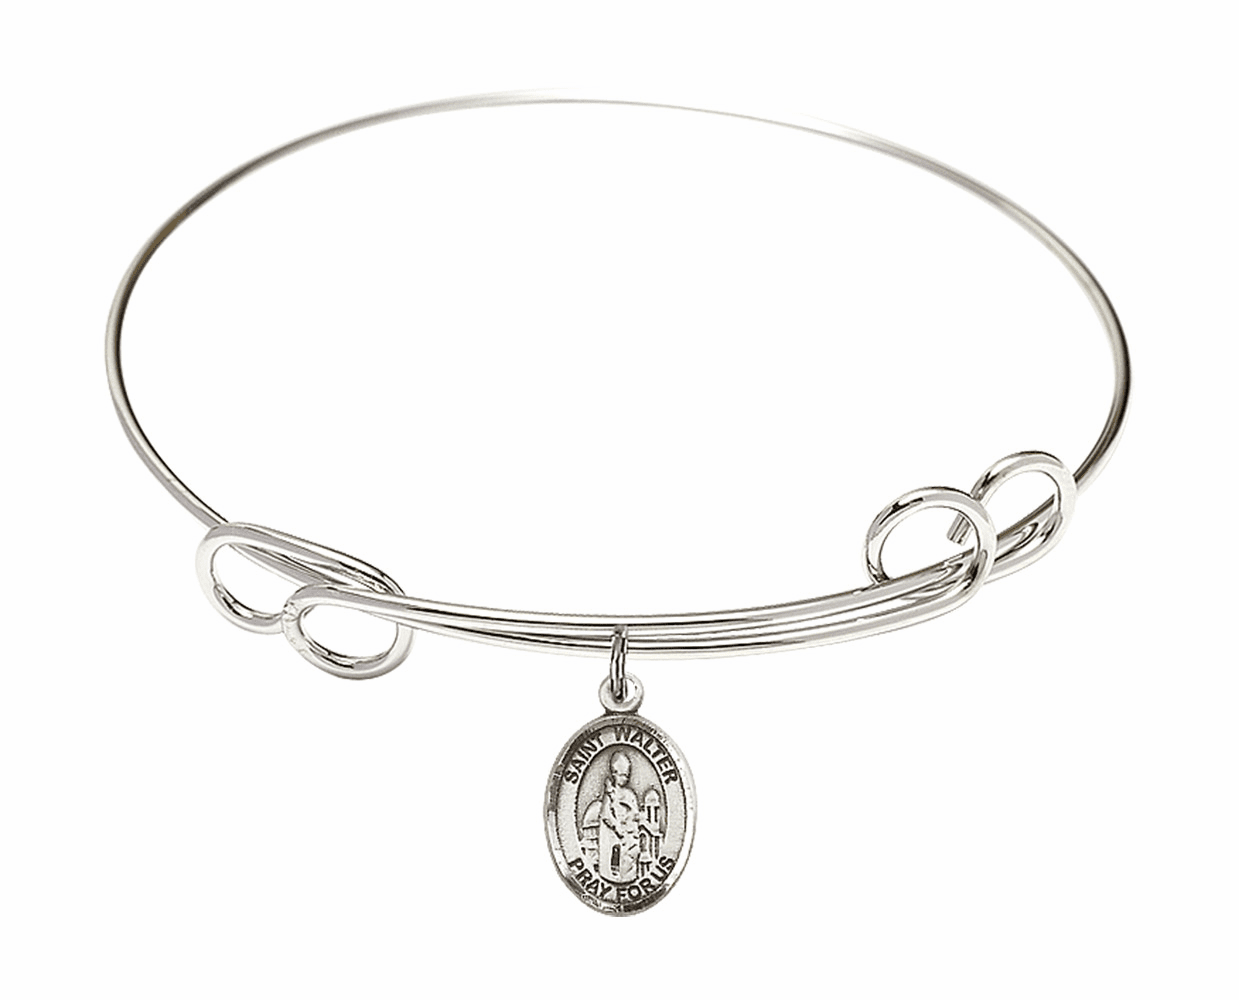 Round Loop St Walter of Pontnoise Bangle Charm Bracelet by Bliss